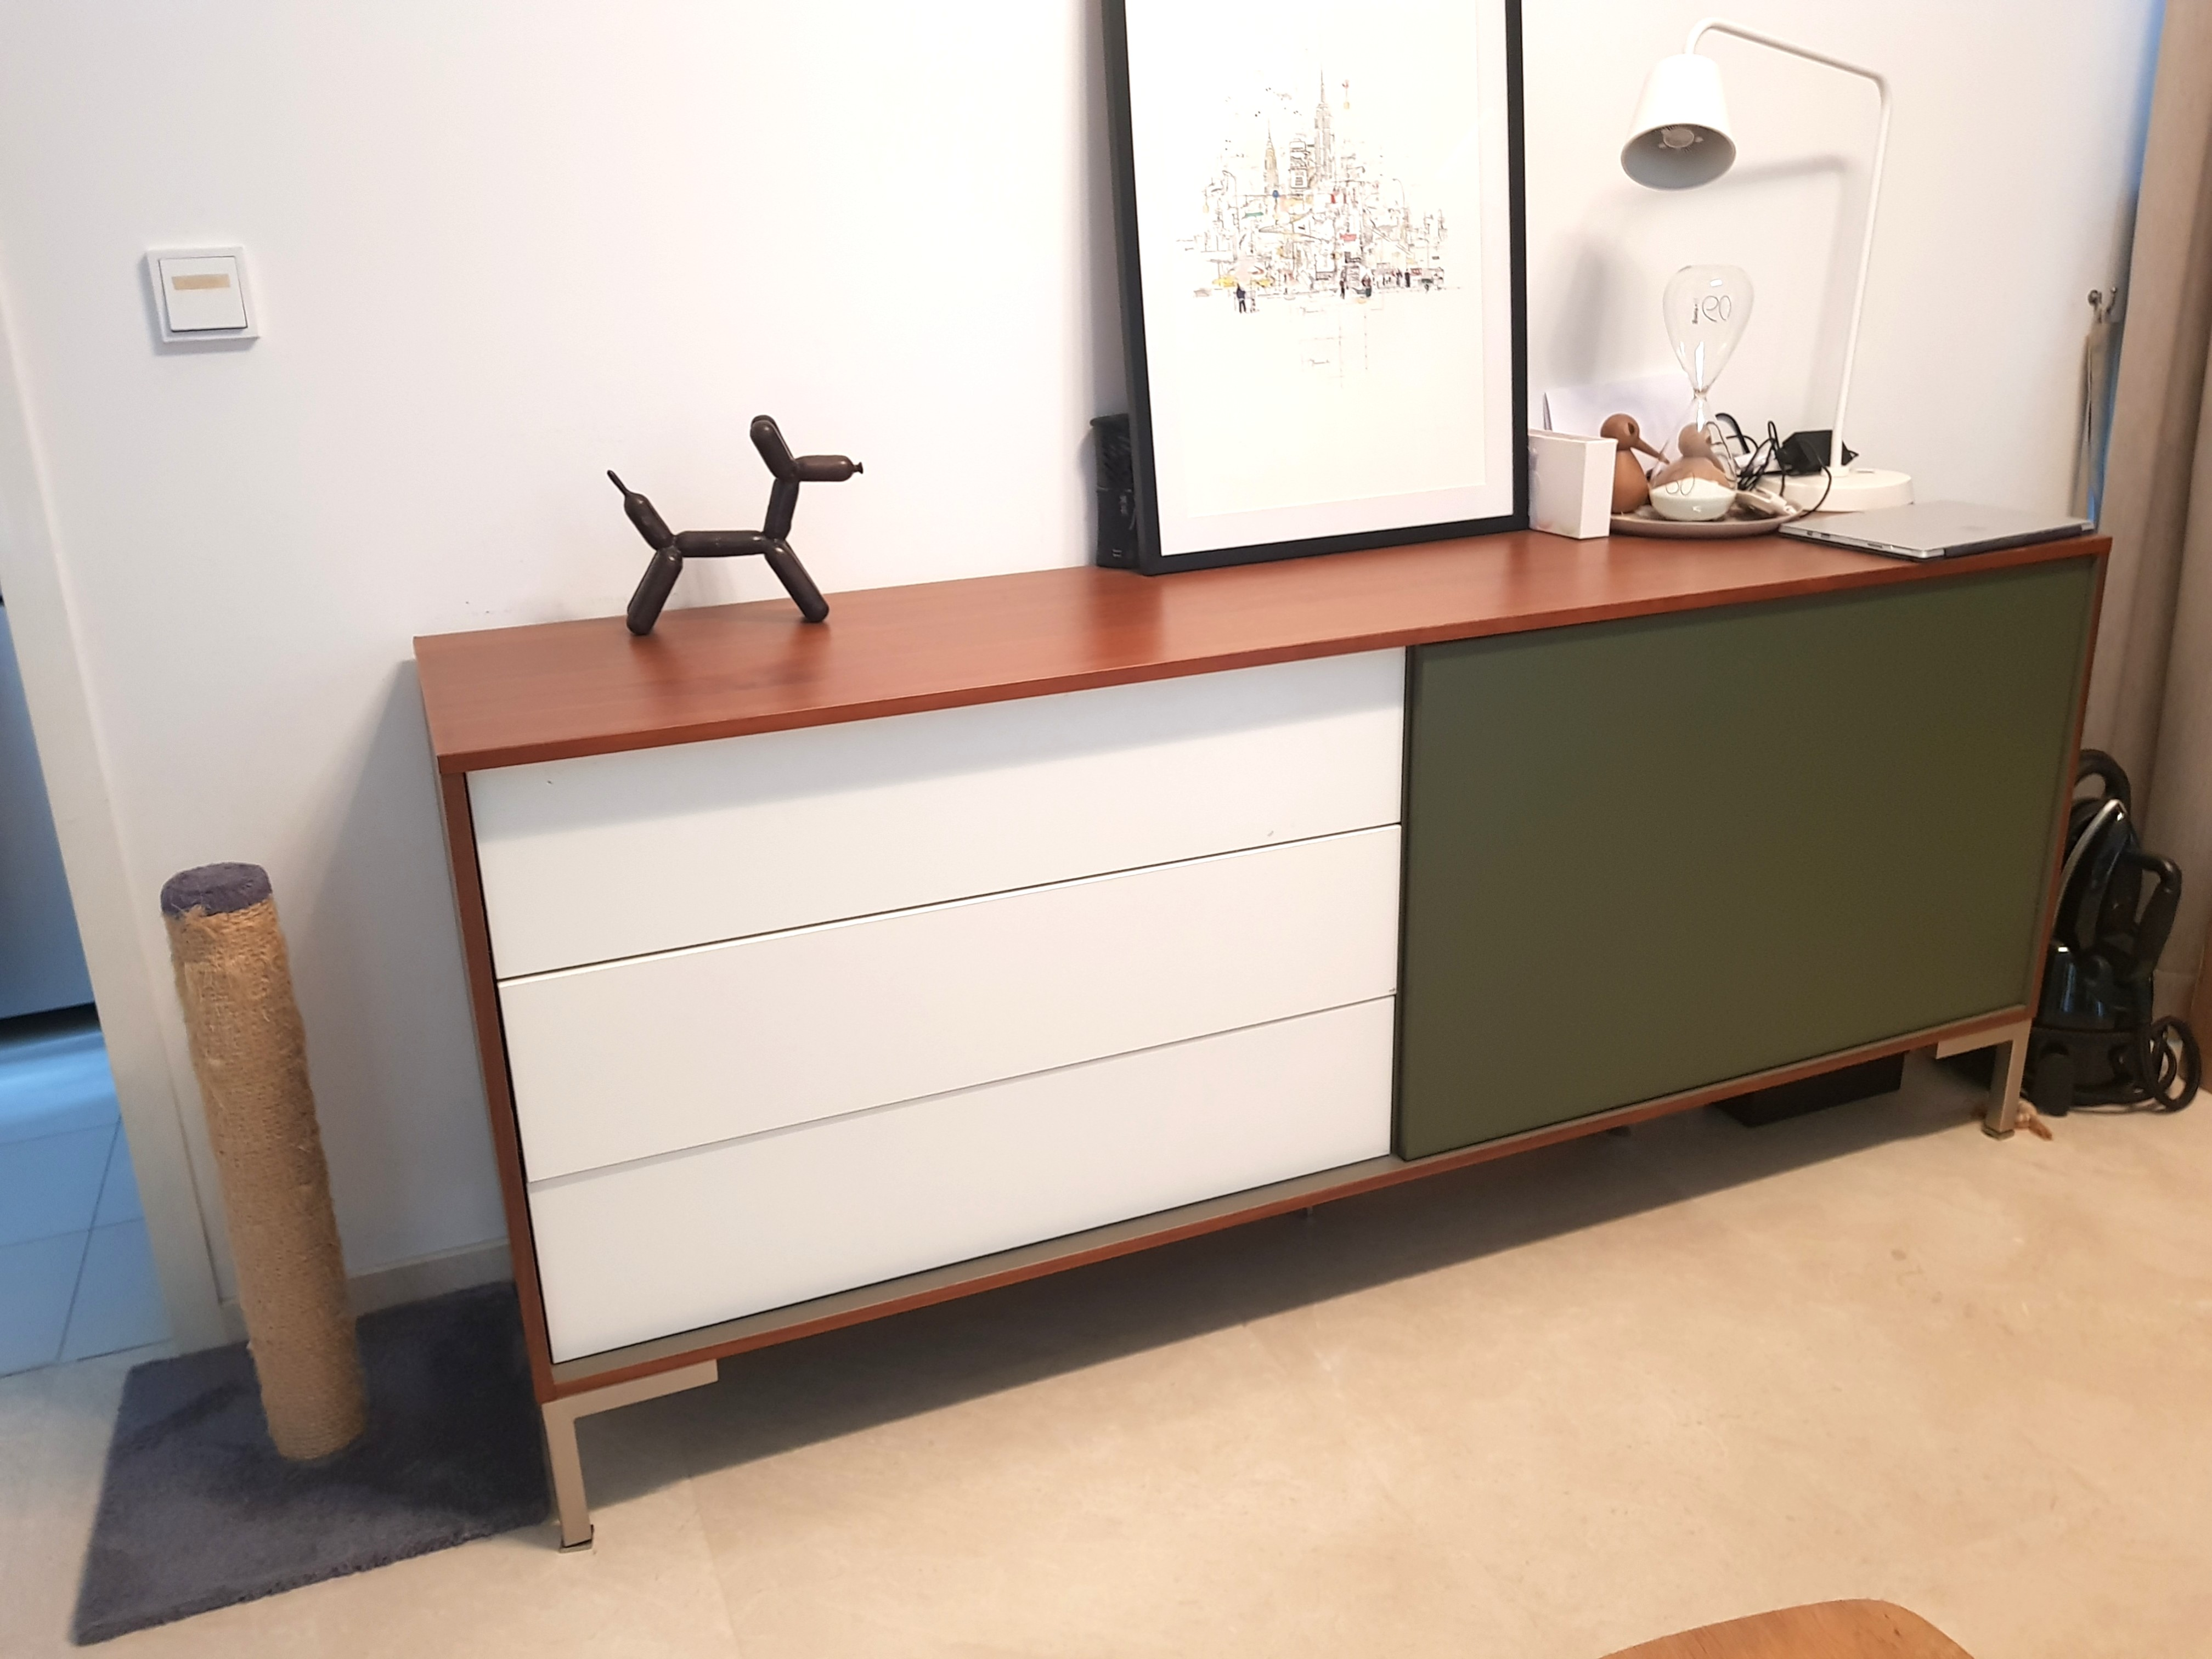 Sideboards Lugano Sideboard Braun Walnuss Interior Boconcept Lugano Sideboard For Sale Furniture Shelves